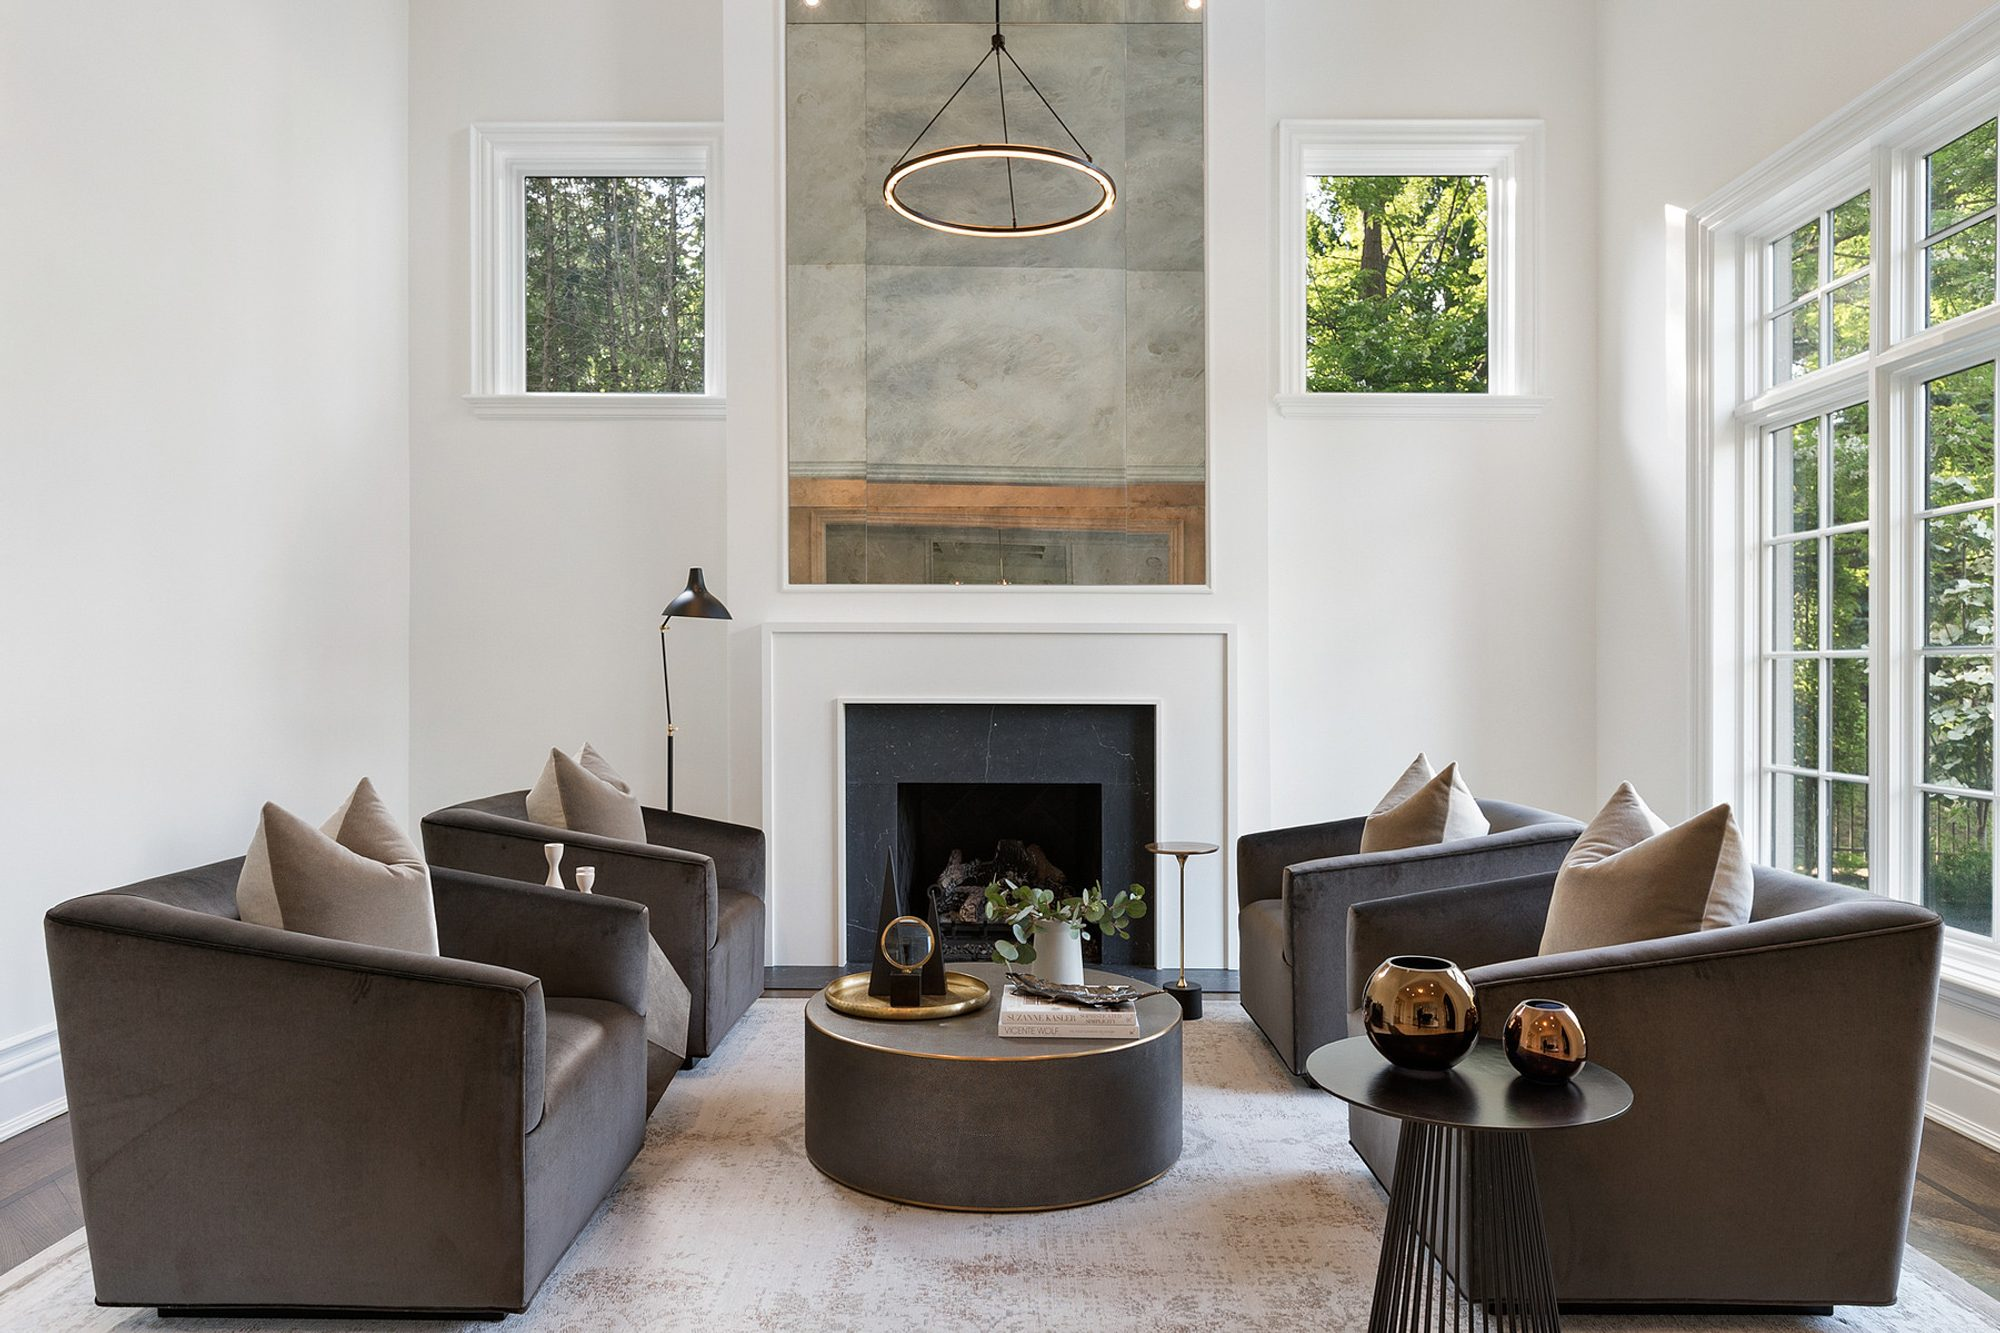 vintage style area rug in a living room